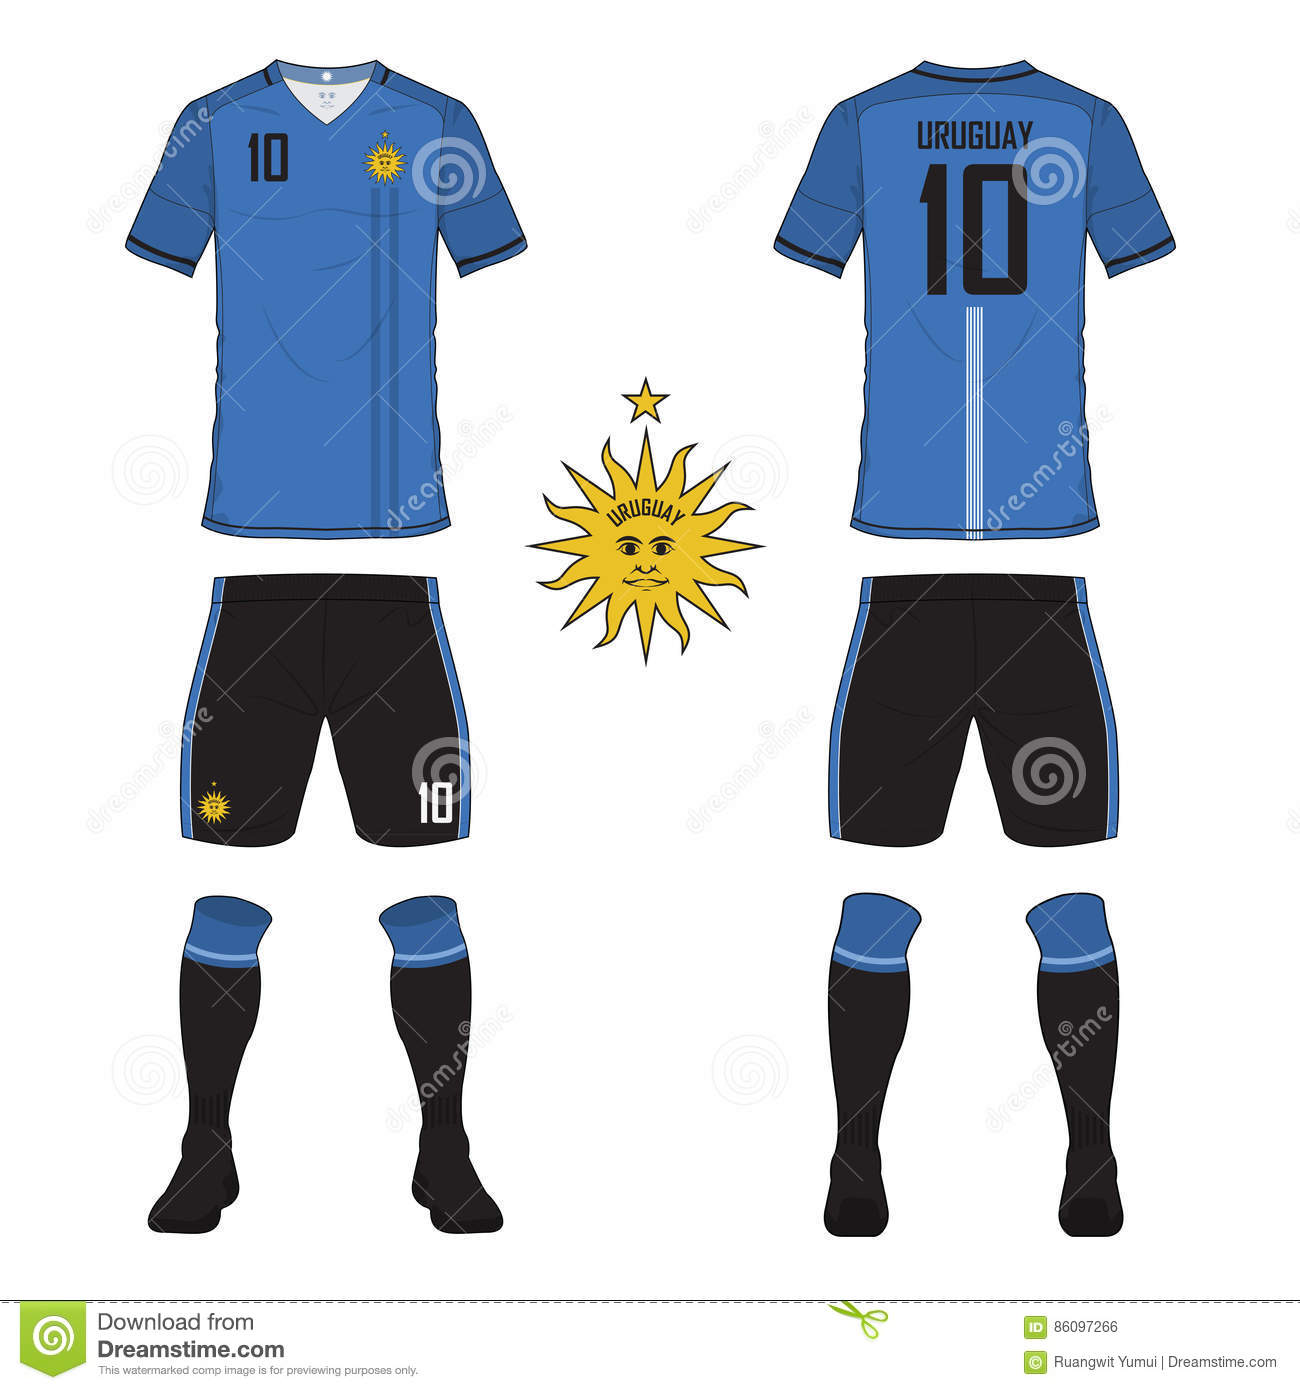 c594a6e989b Set of soccer jersey or football kit template for Uruguay national football  team. Front and